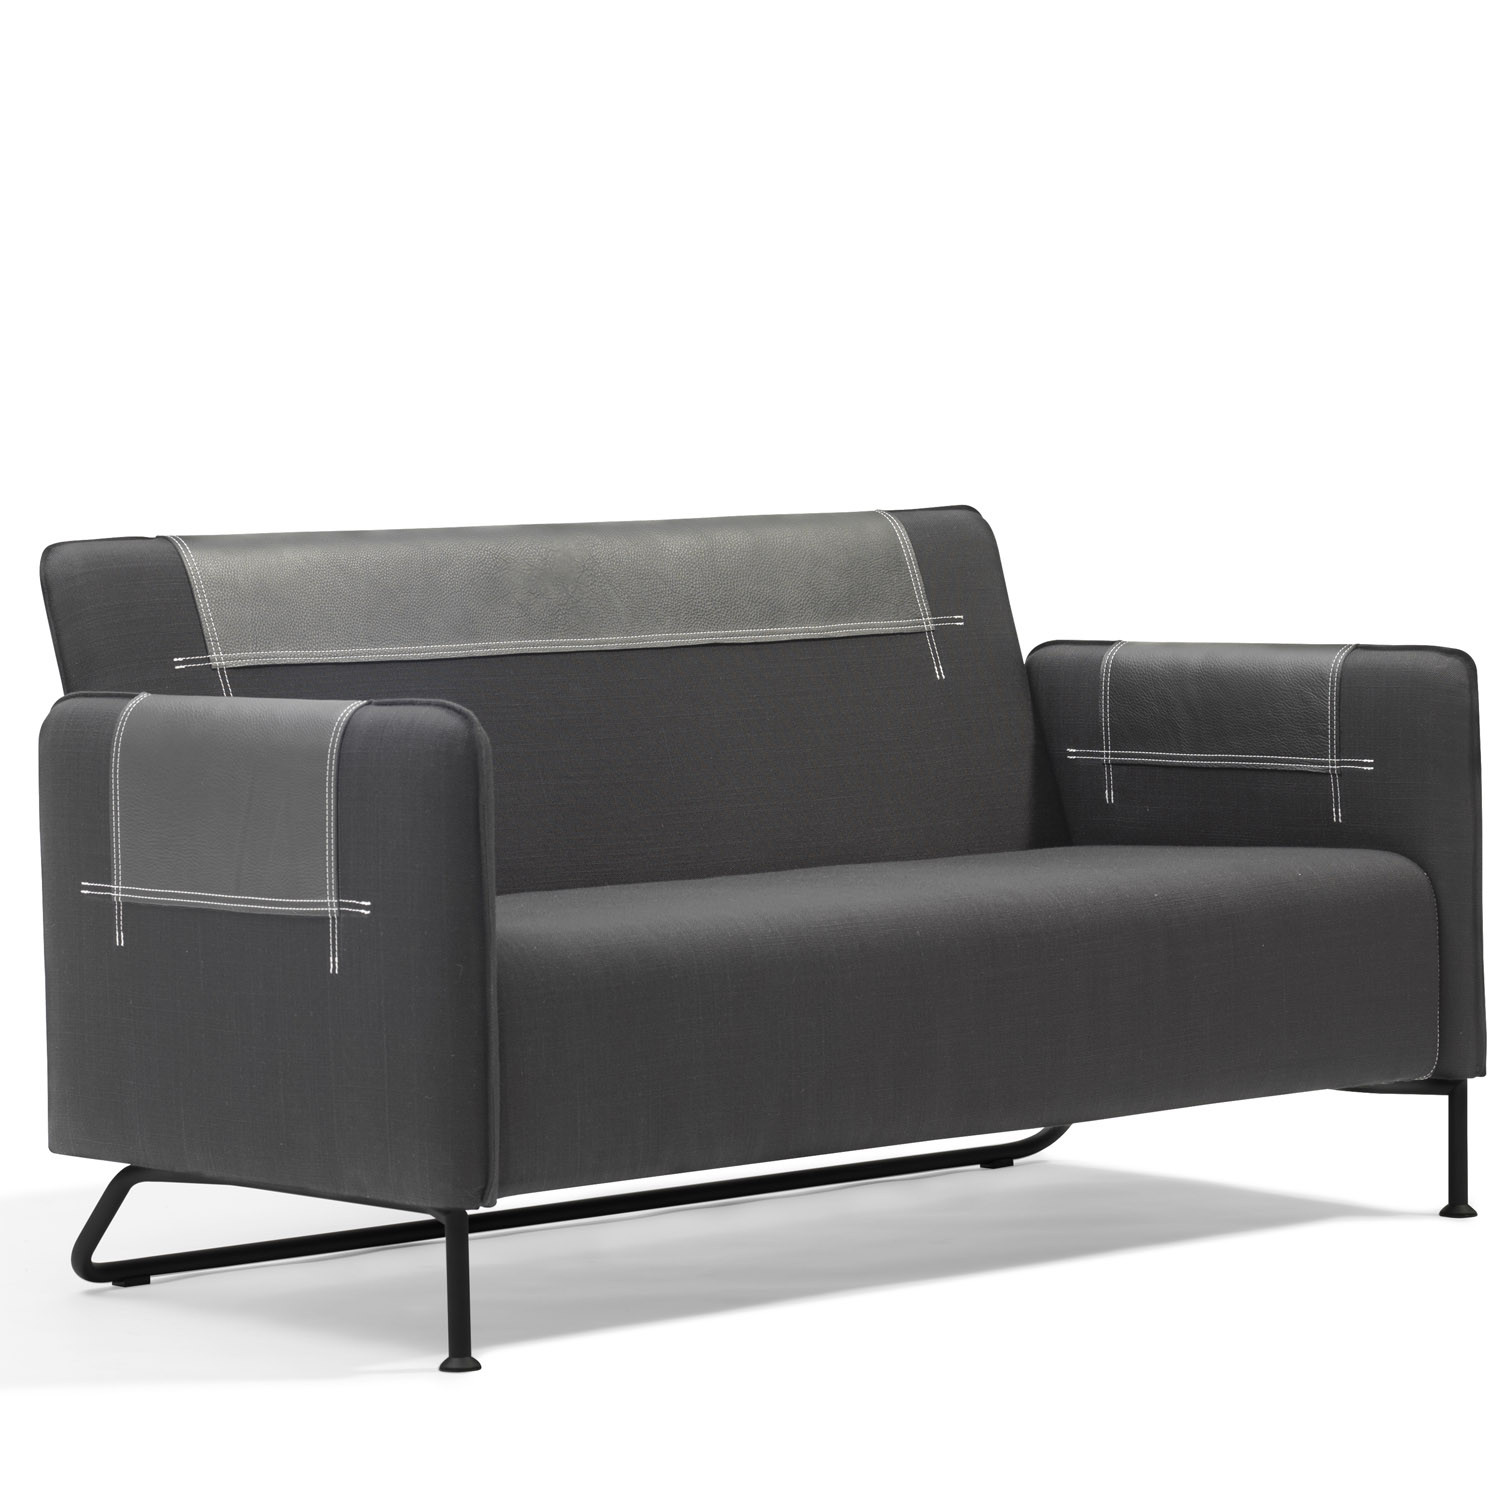 Taylor Sofa S37 from Bla Station